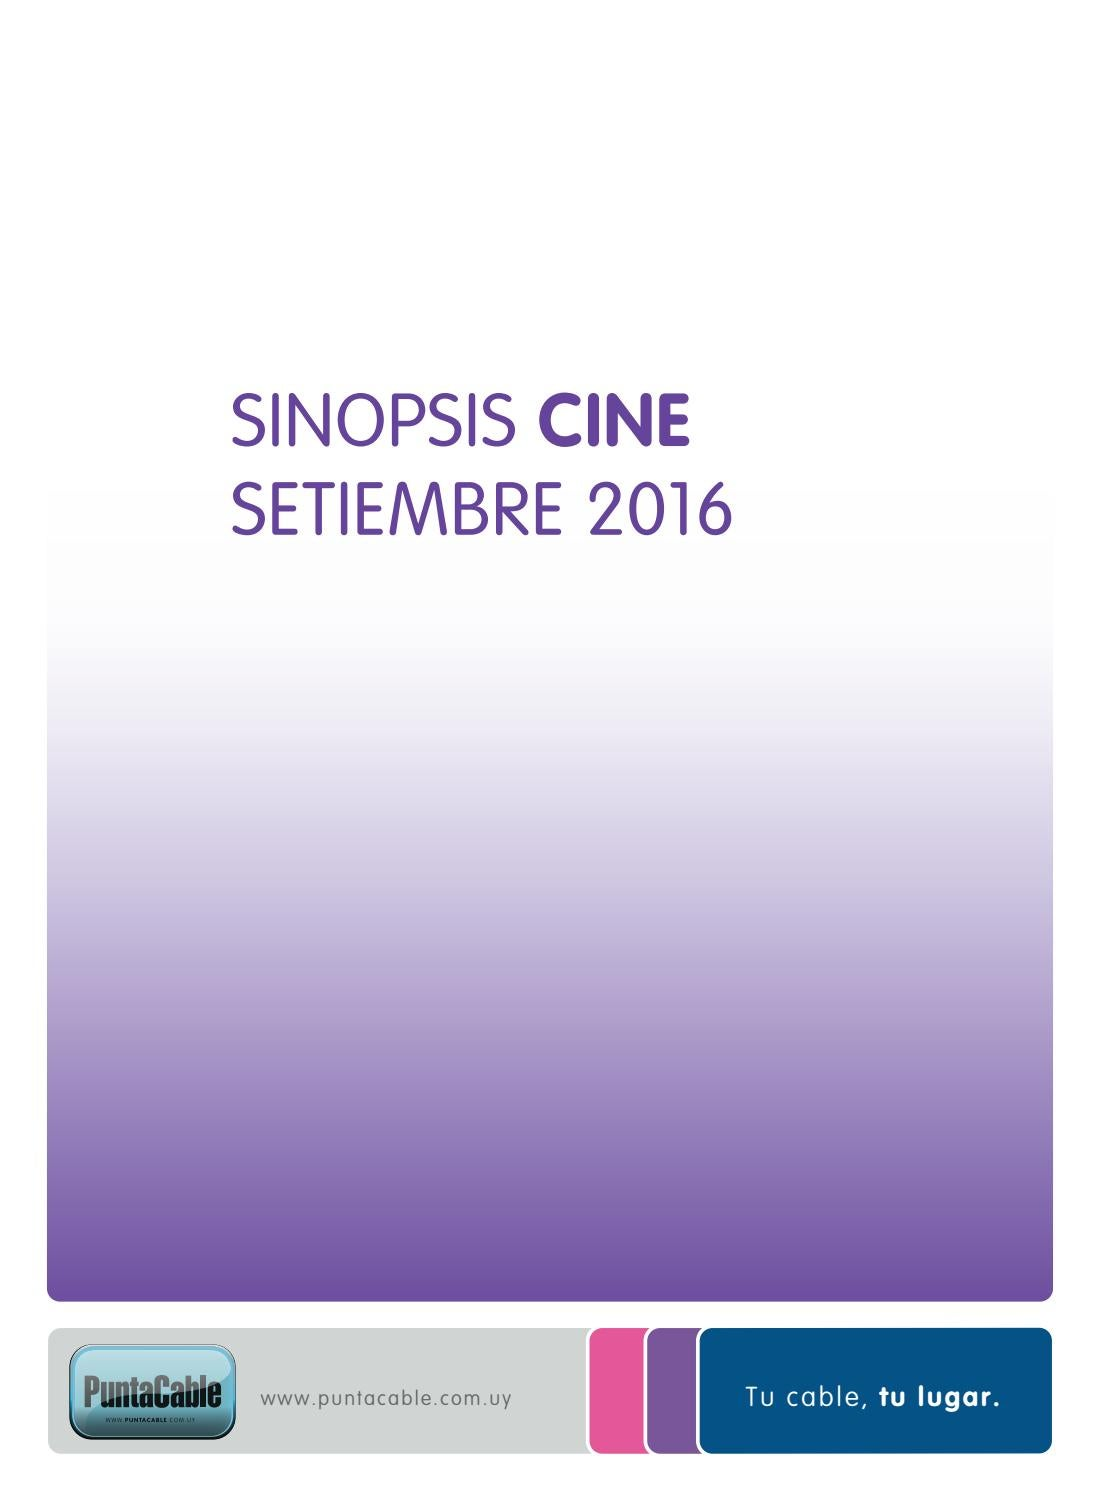 Sinopsis setiembre by Punta Cable - issuu